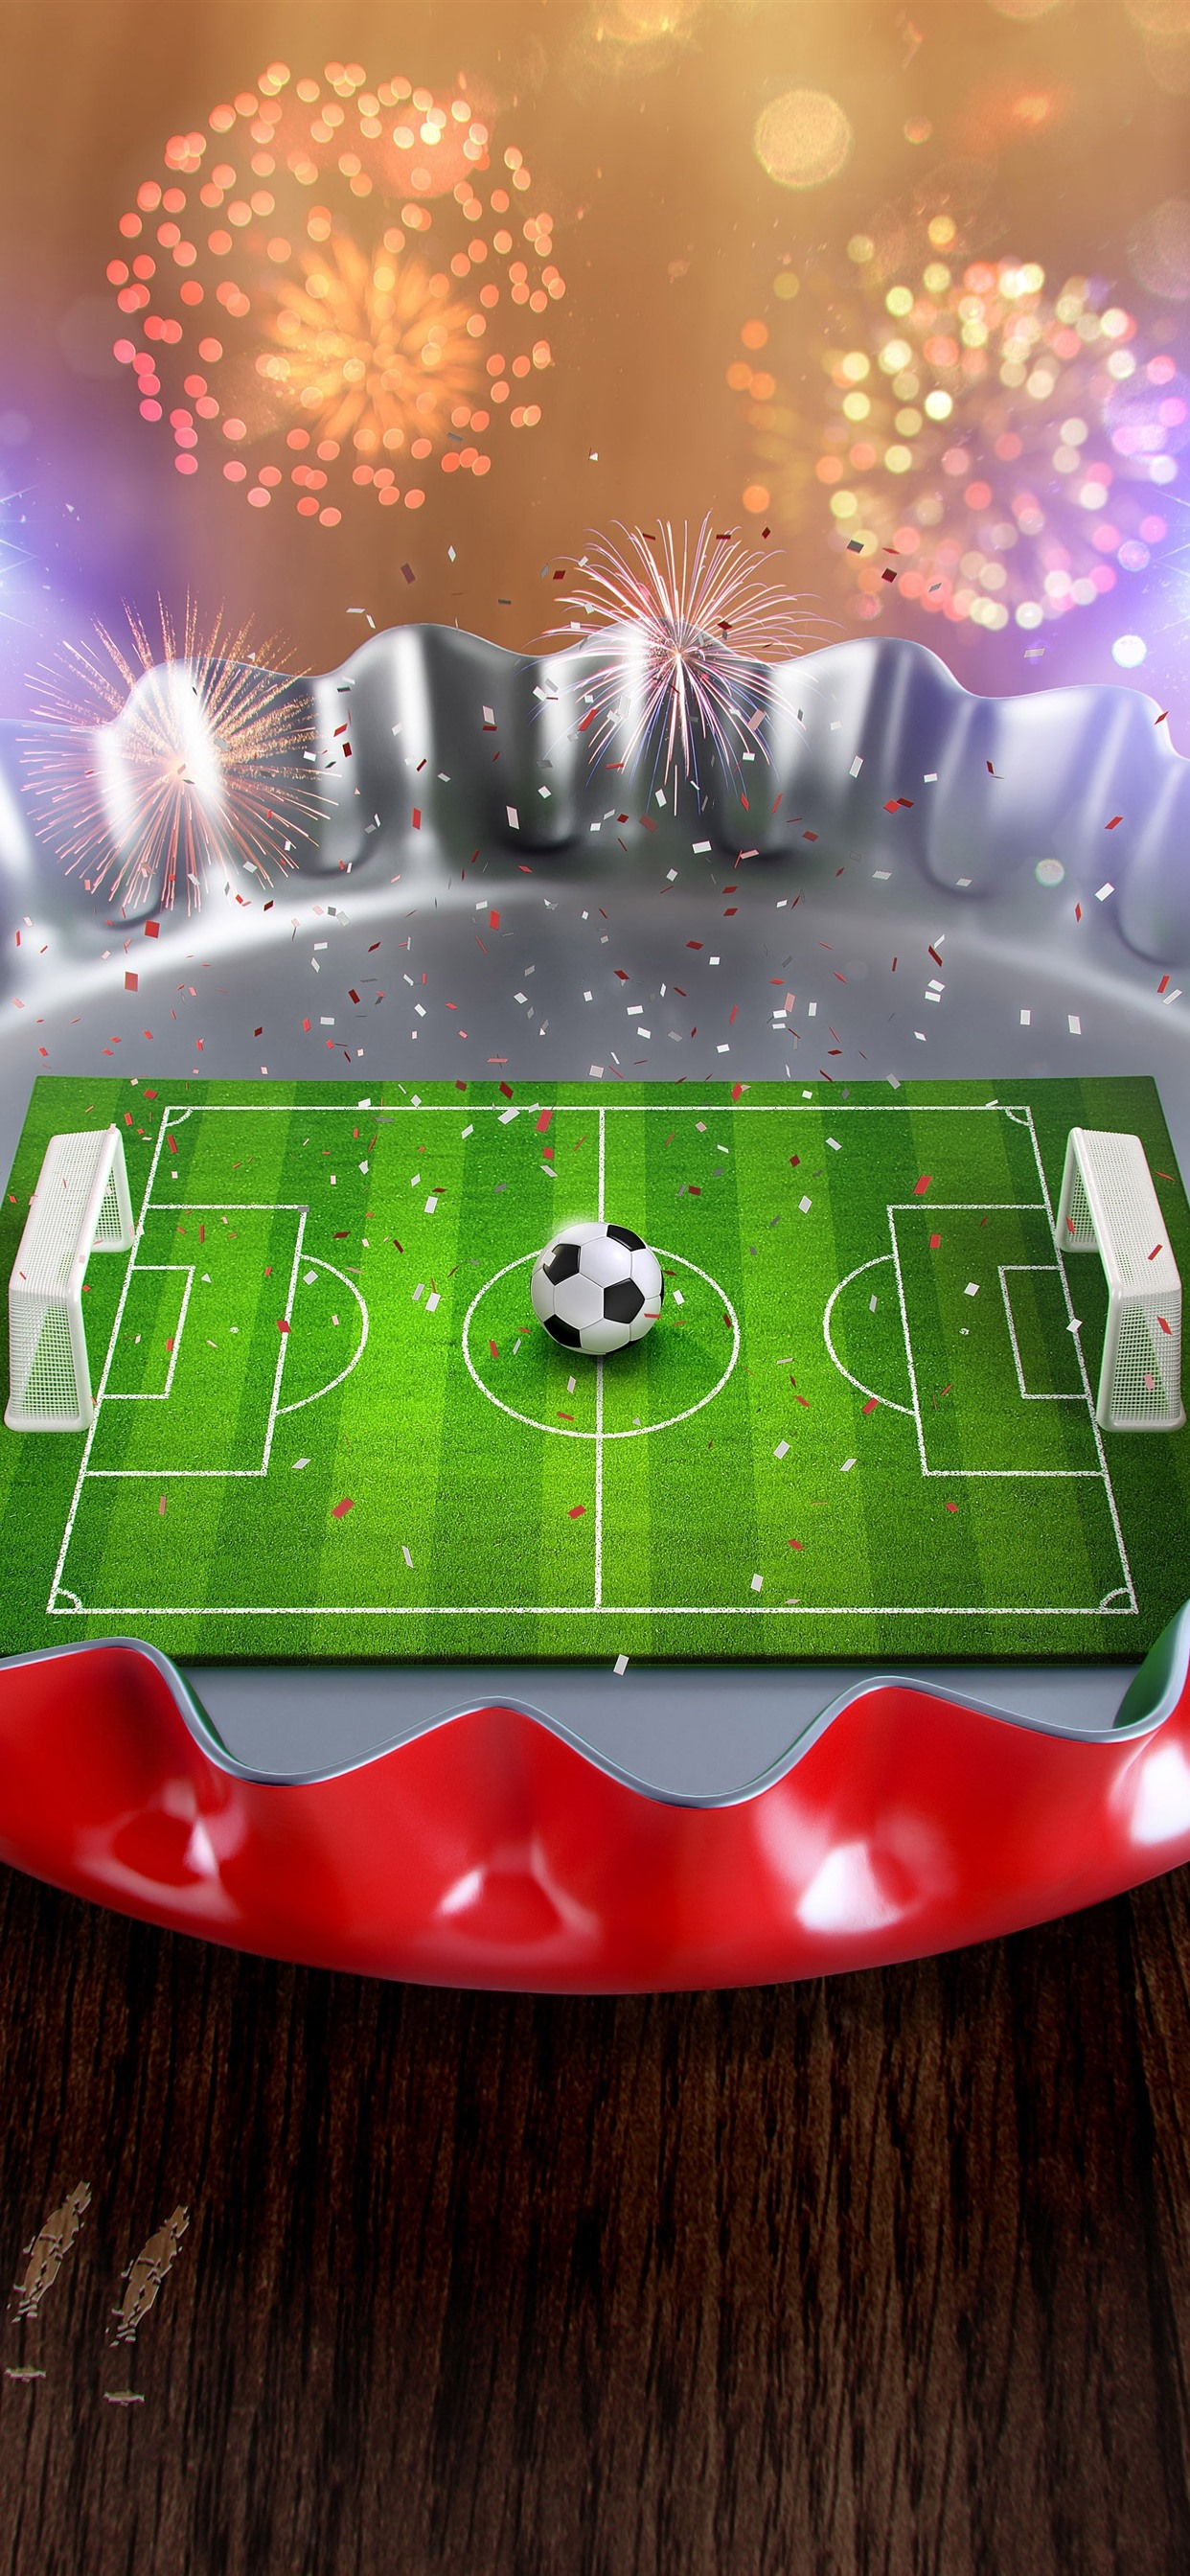 Creative Picture Mini Football Ground Cover Fireworks 1242x2688 Iphone 11 Pro Xs Max Wallpaper Background Picture Image